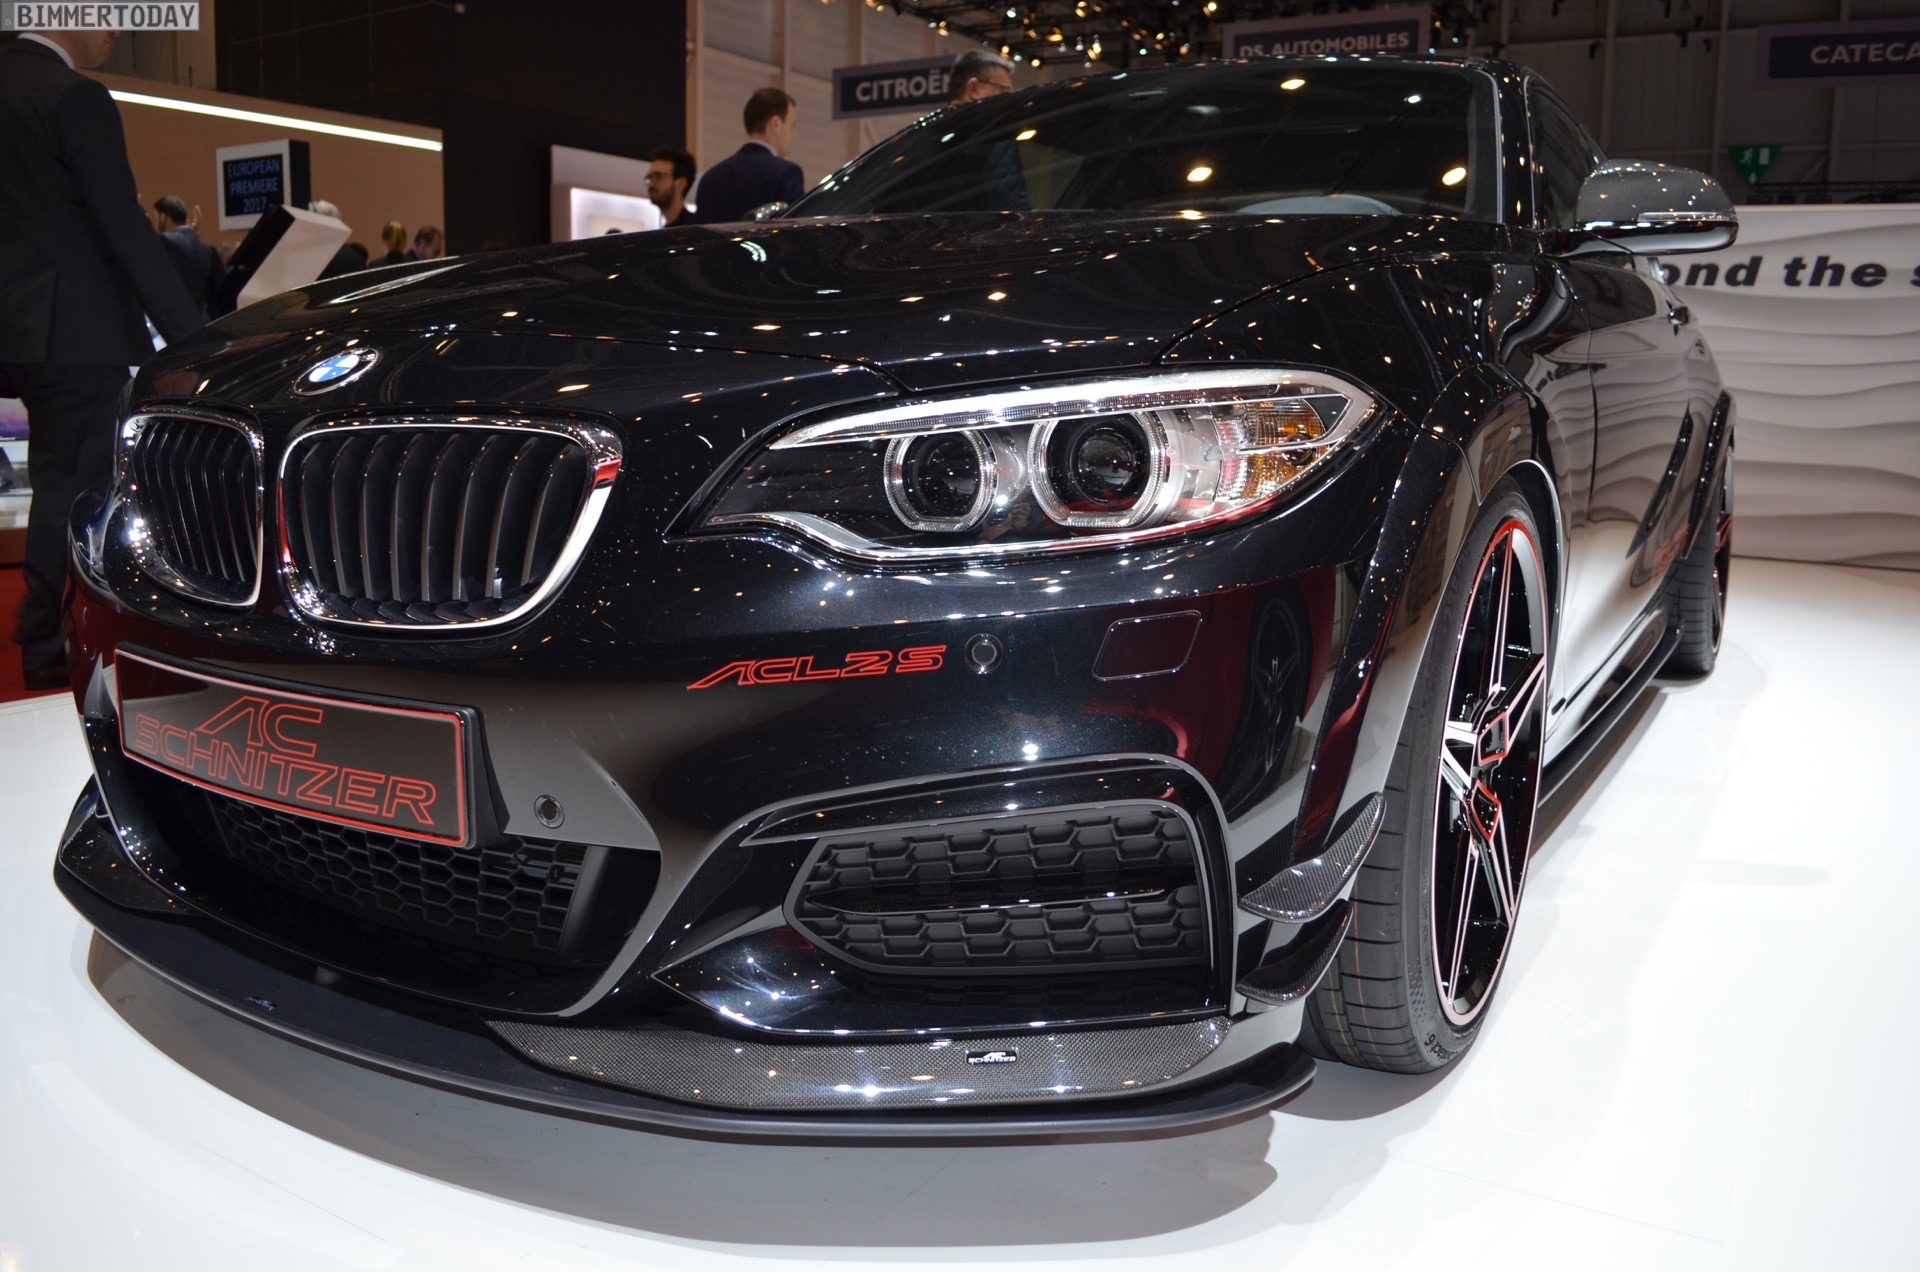 2017 geneva is this the hottest bmw m240i ever made. Black Bedroom Furniture Sets. Home Design Ideas